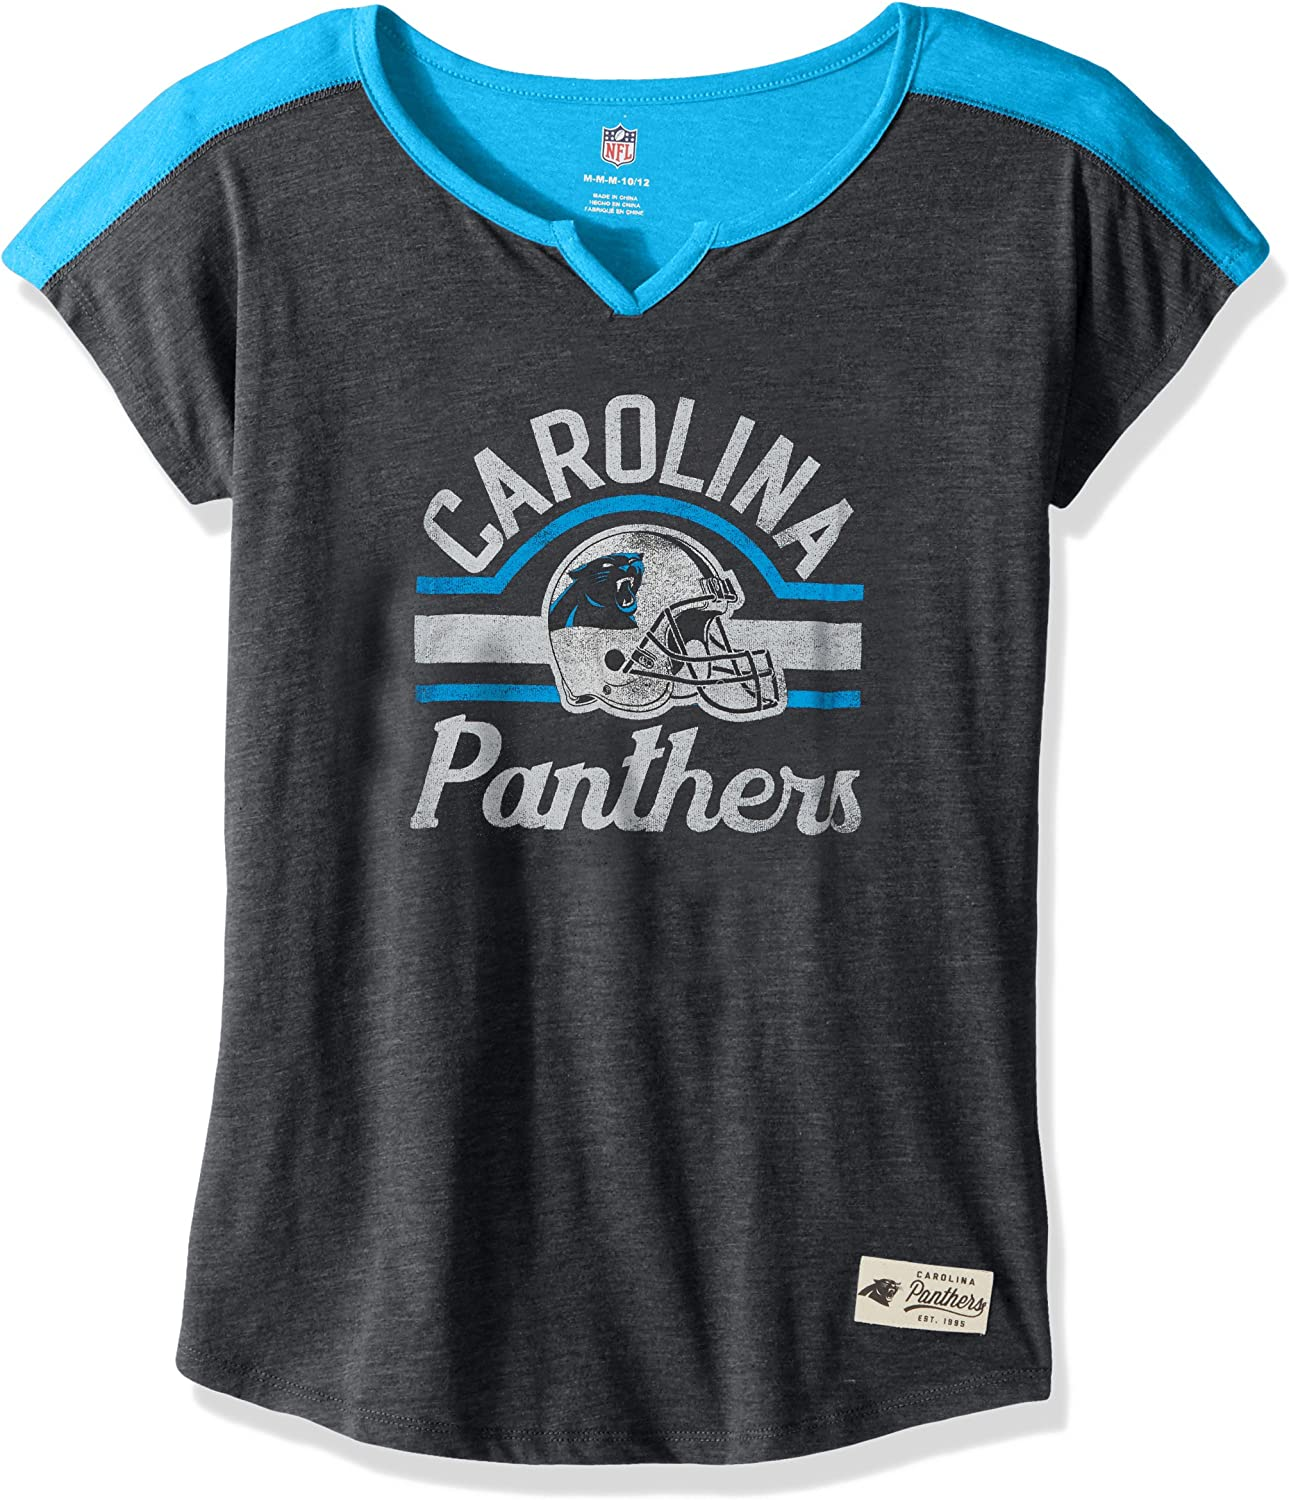 NFL by Outerstuff Girls NFL Girls 7-16 Tribute  Football Tee K 1742M-P, Girls, NFL Girls 7-16 Tribute  Football Tee, K 1742M, Black, Youth Girls Small(7-8)